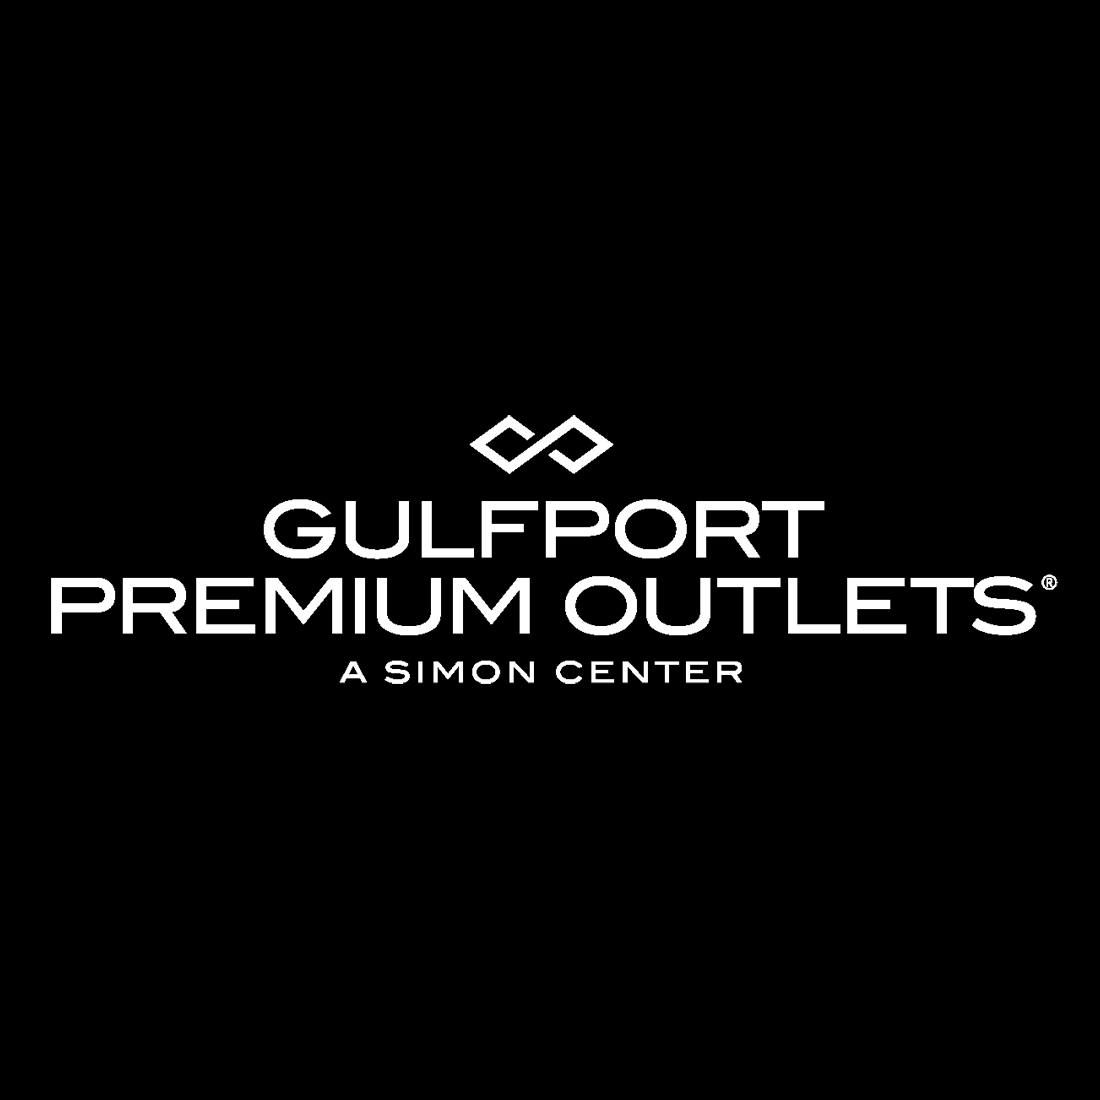 Gulfport Premium Outlets